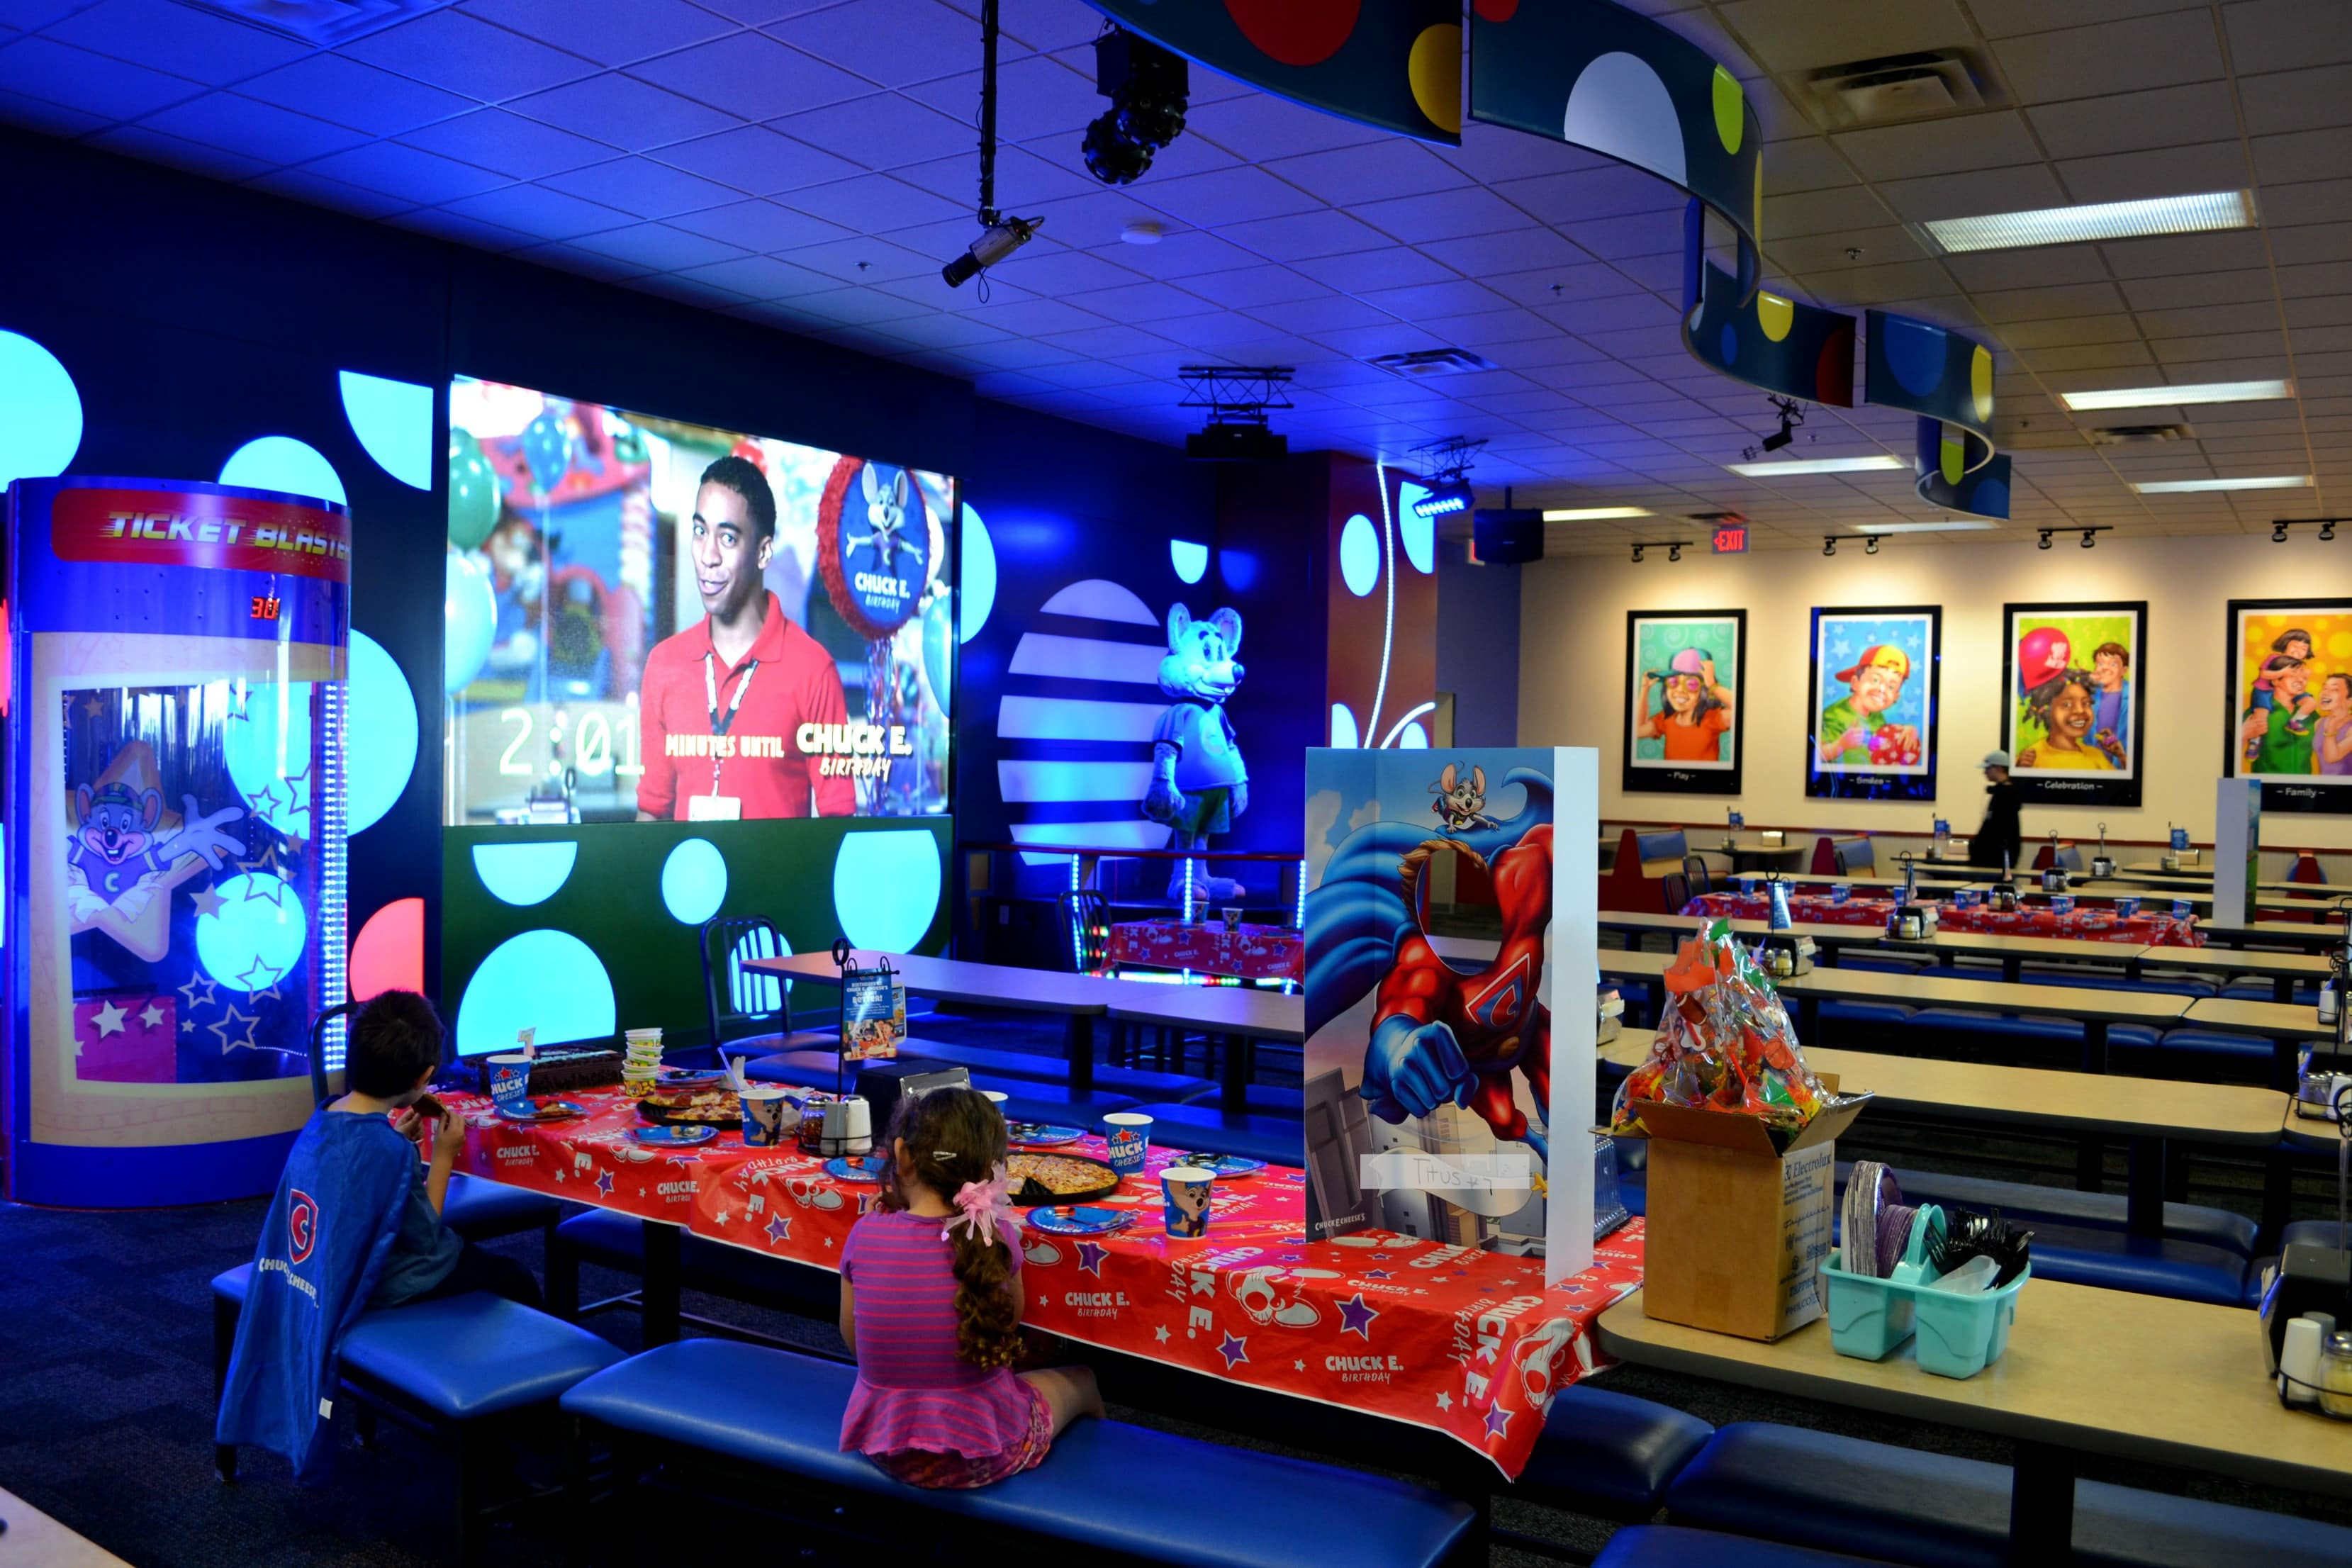 Chuck E Cheese: 5 Reasons To Book Your Child's Party At Chuck E. Cheese's